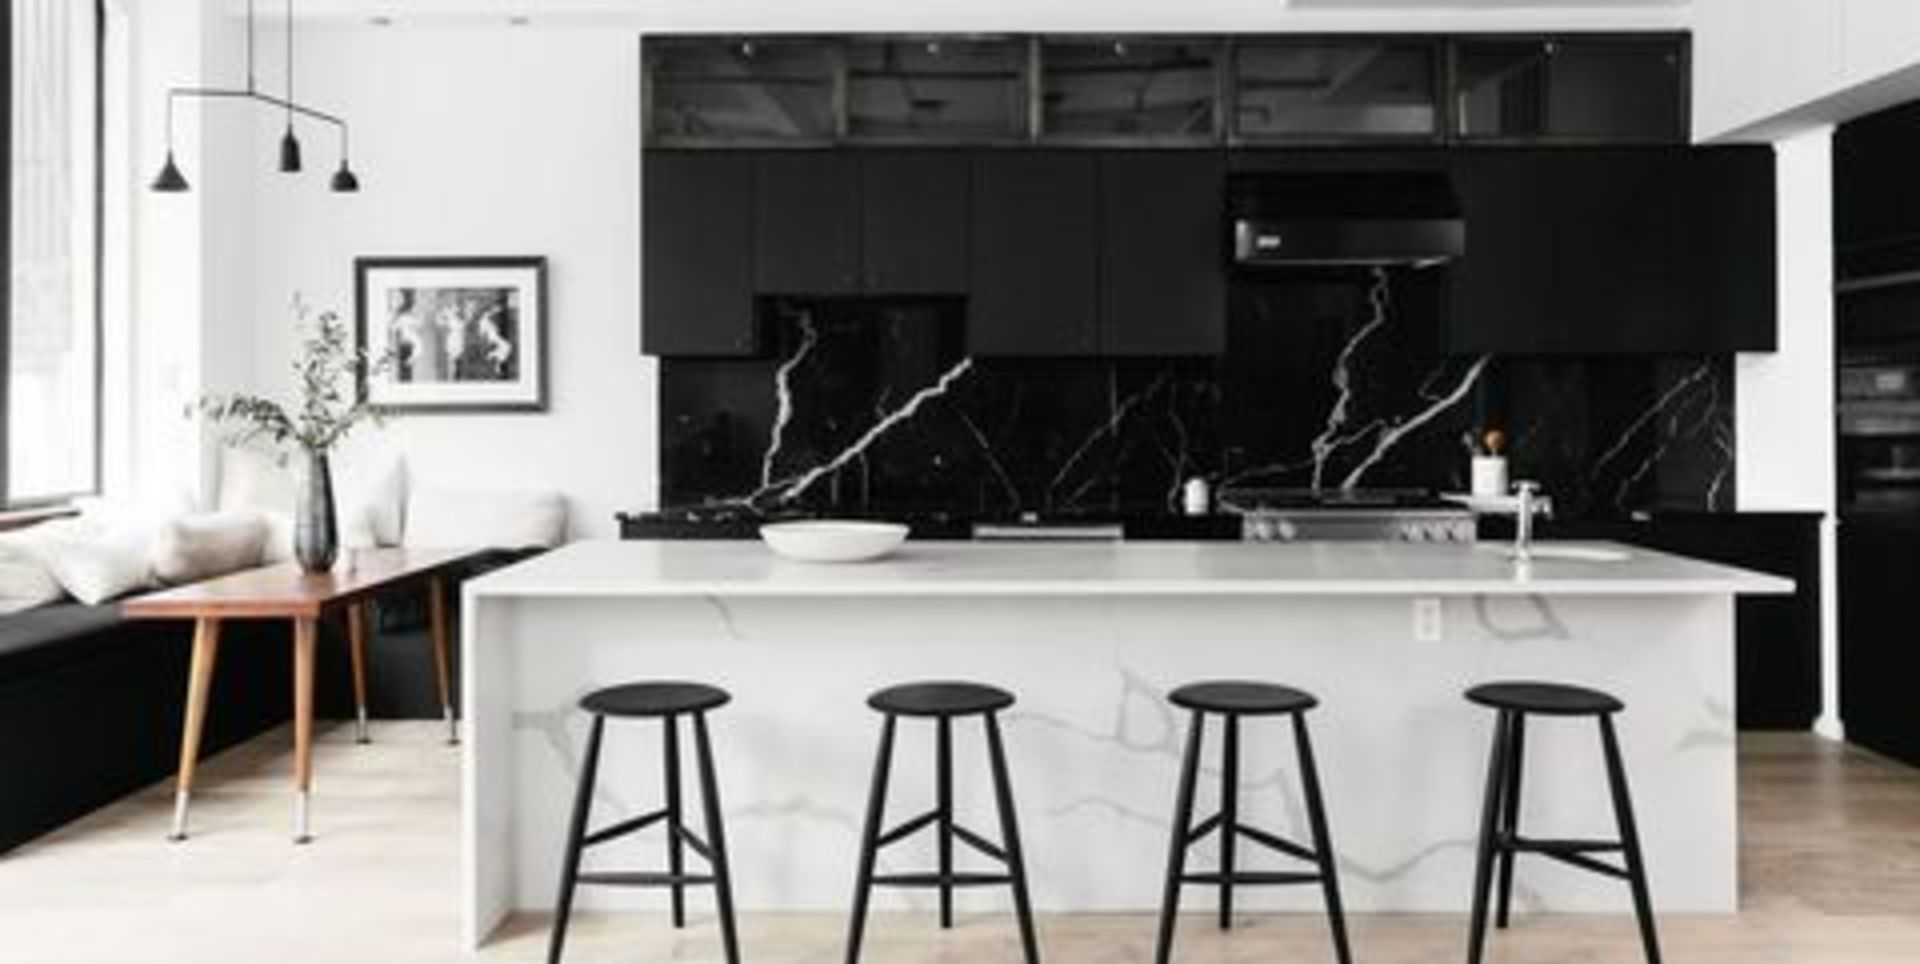 Stranded Without a Kitchen Island?